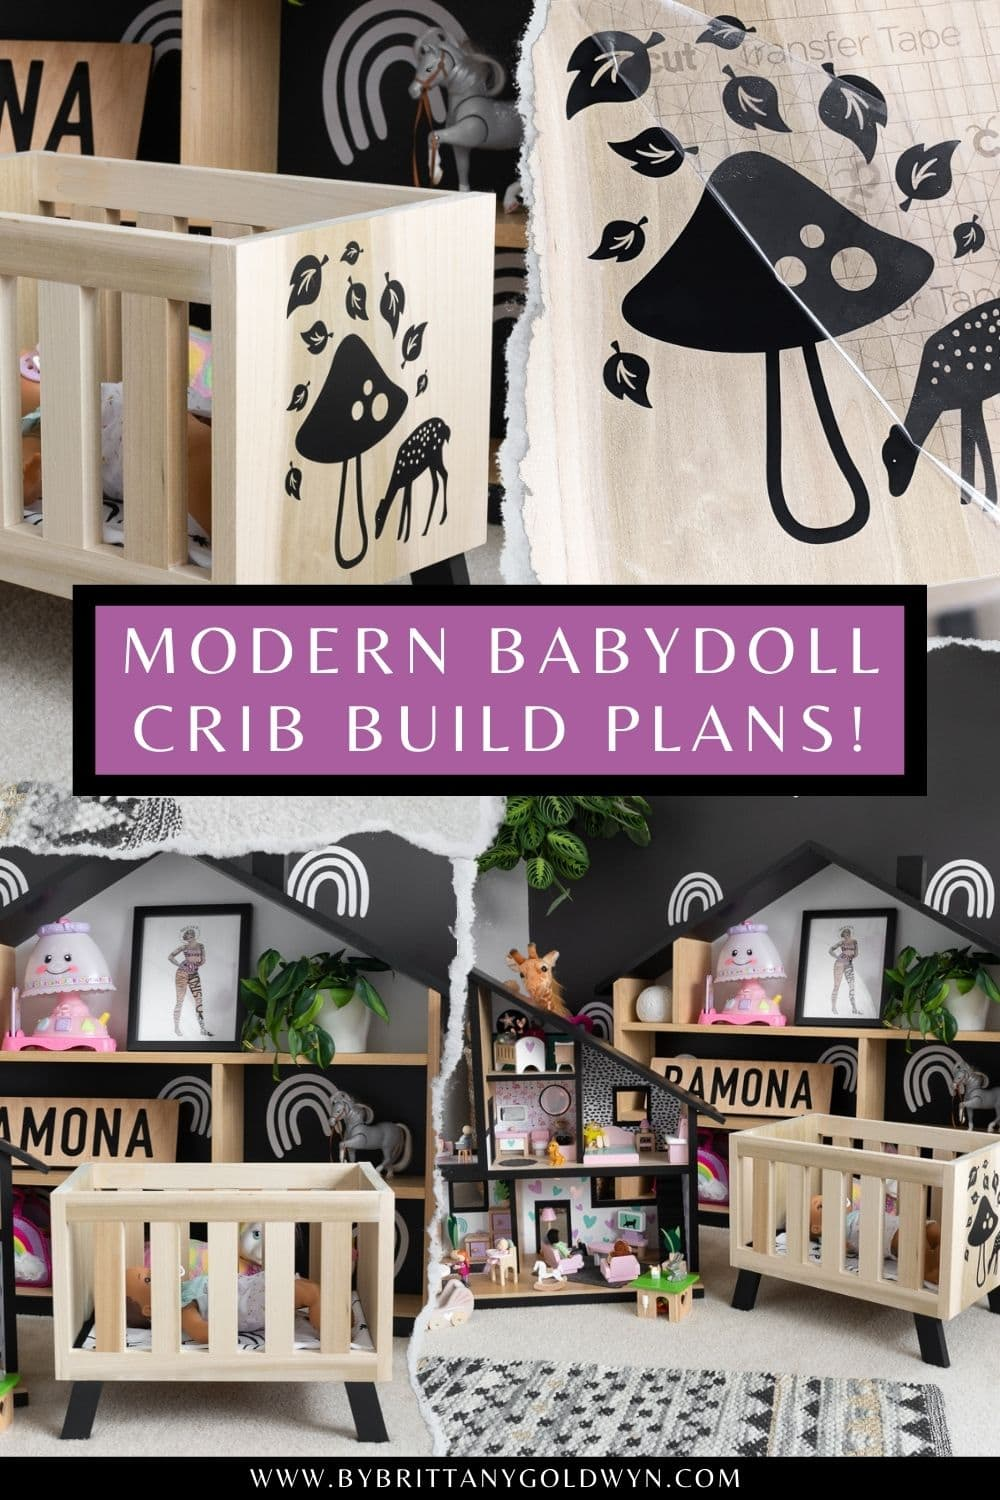 pinnable graphic with images of a modern kids room and text about how to build a modern babydoll crib